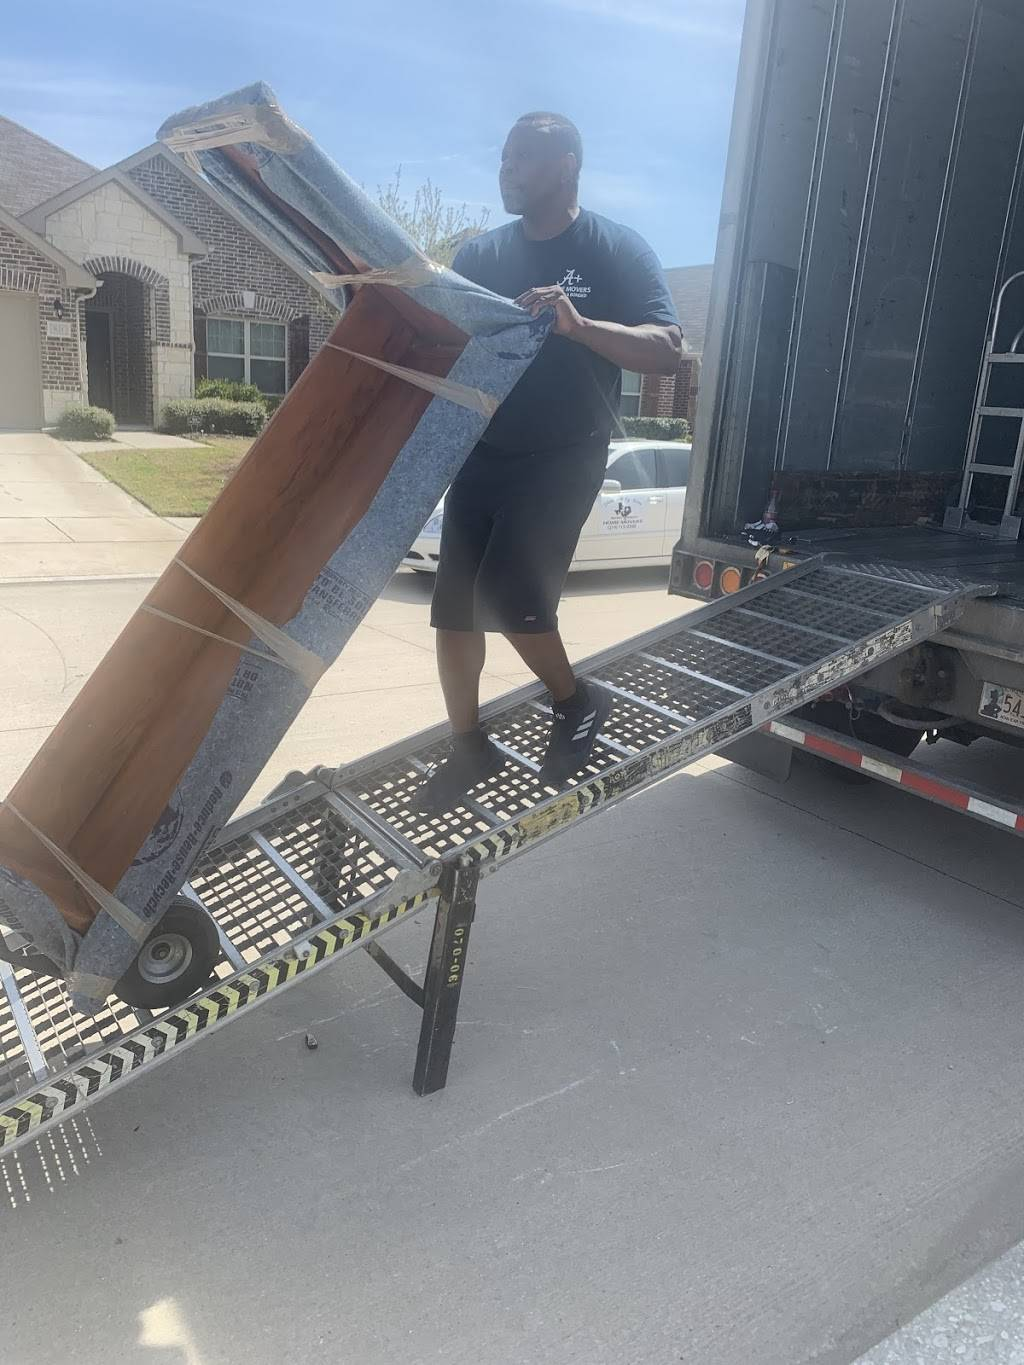 A+ Home Movers - moving company  | Photo 5 of 7 | Address: 8418 Coventry Dr, Rowlett, TX 75089, USA | Phone: (214) 715-0260